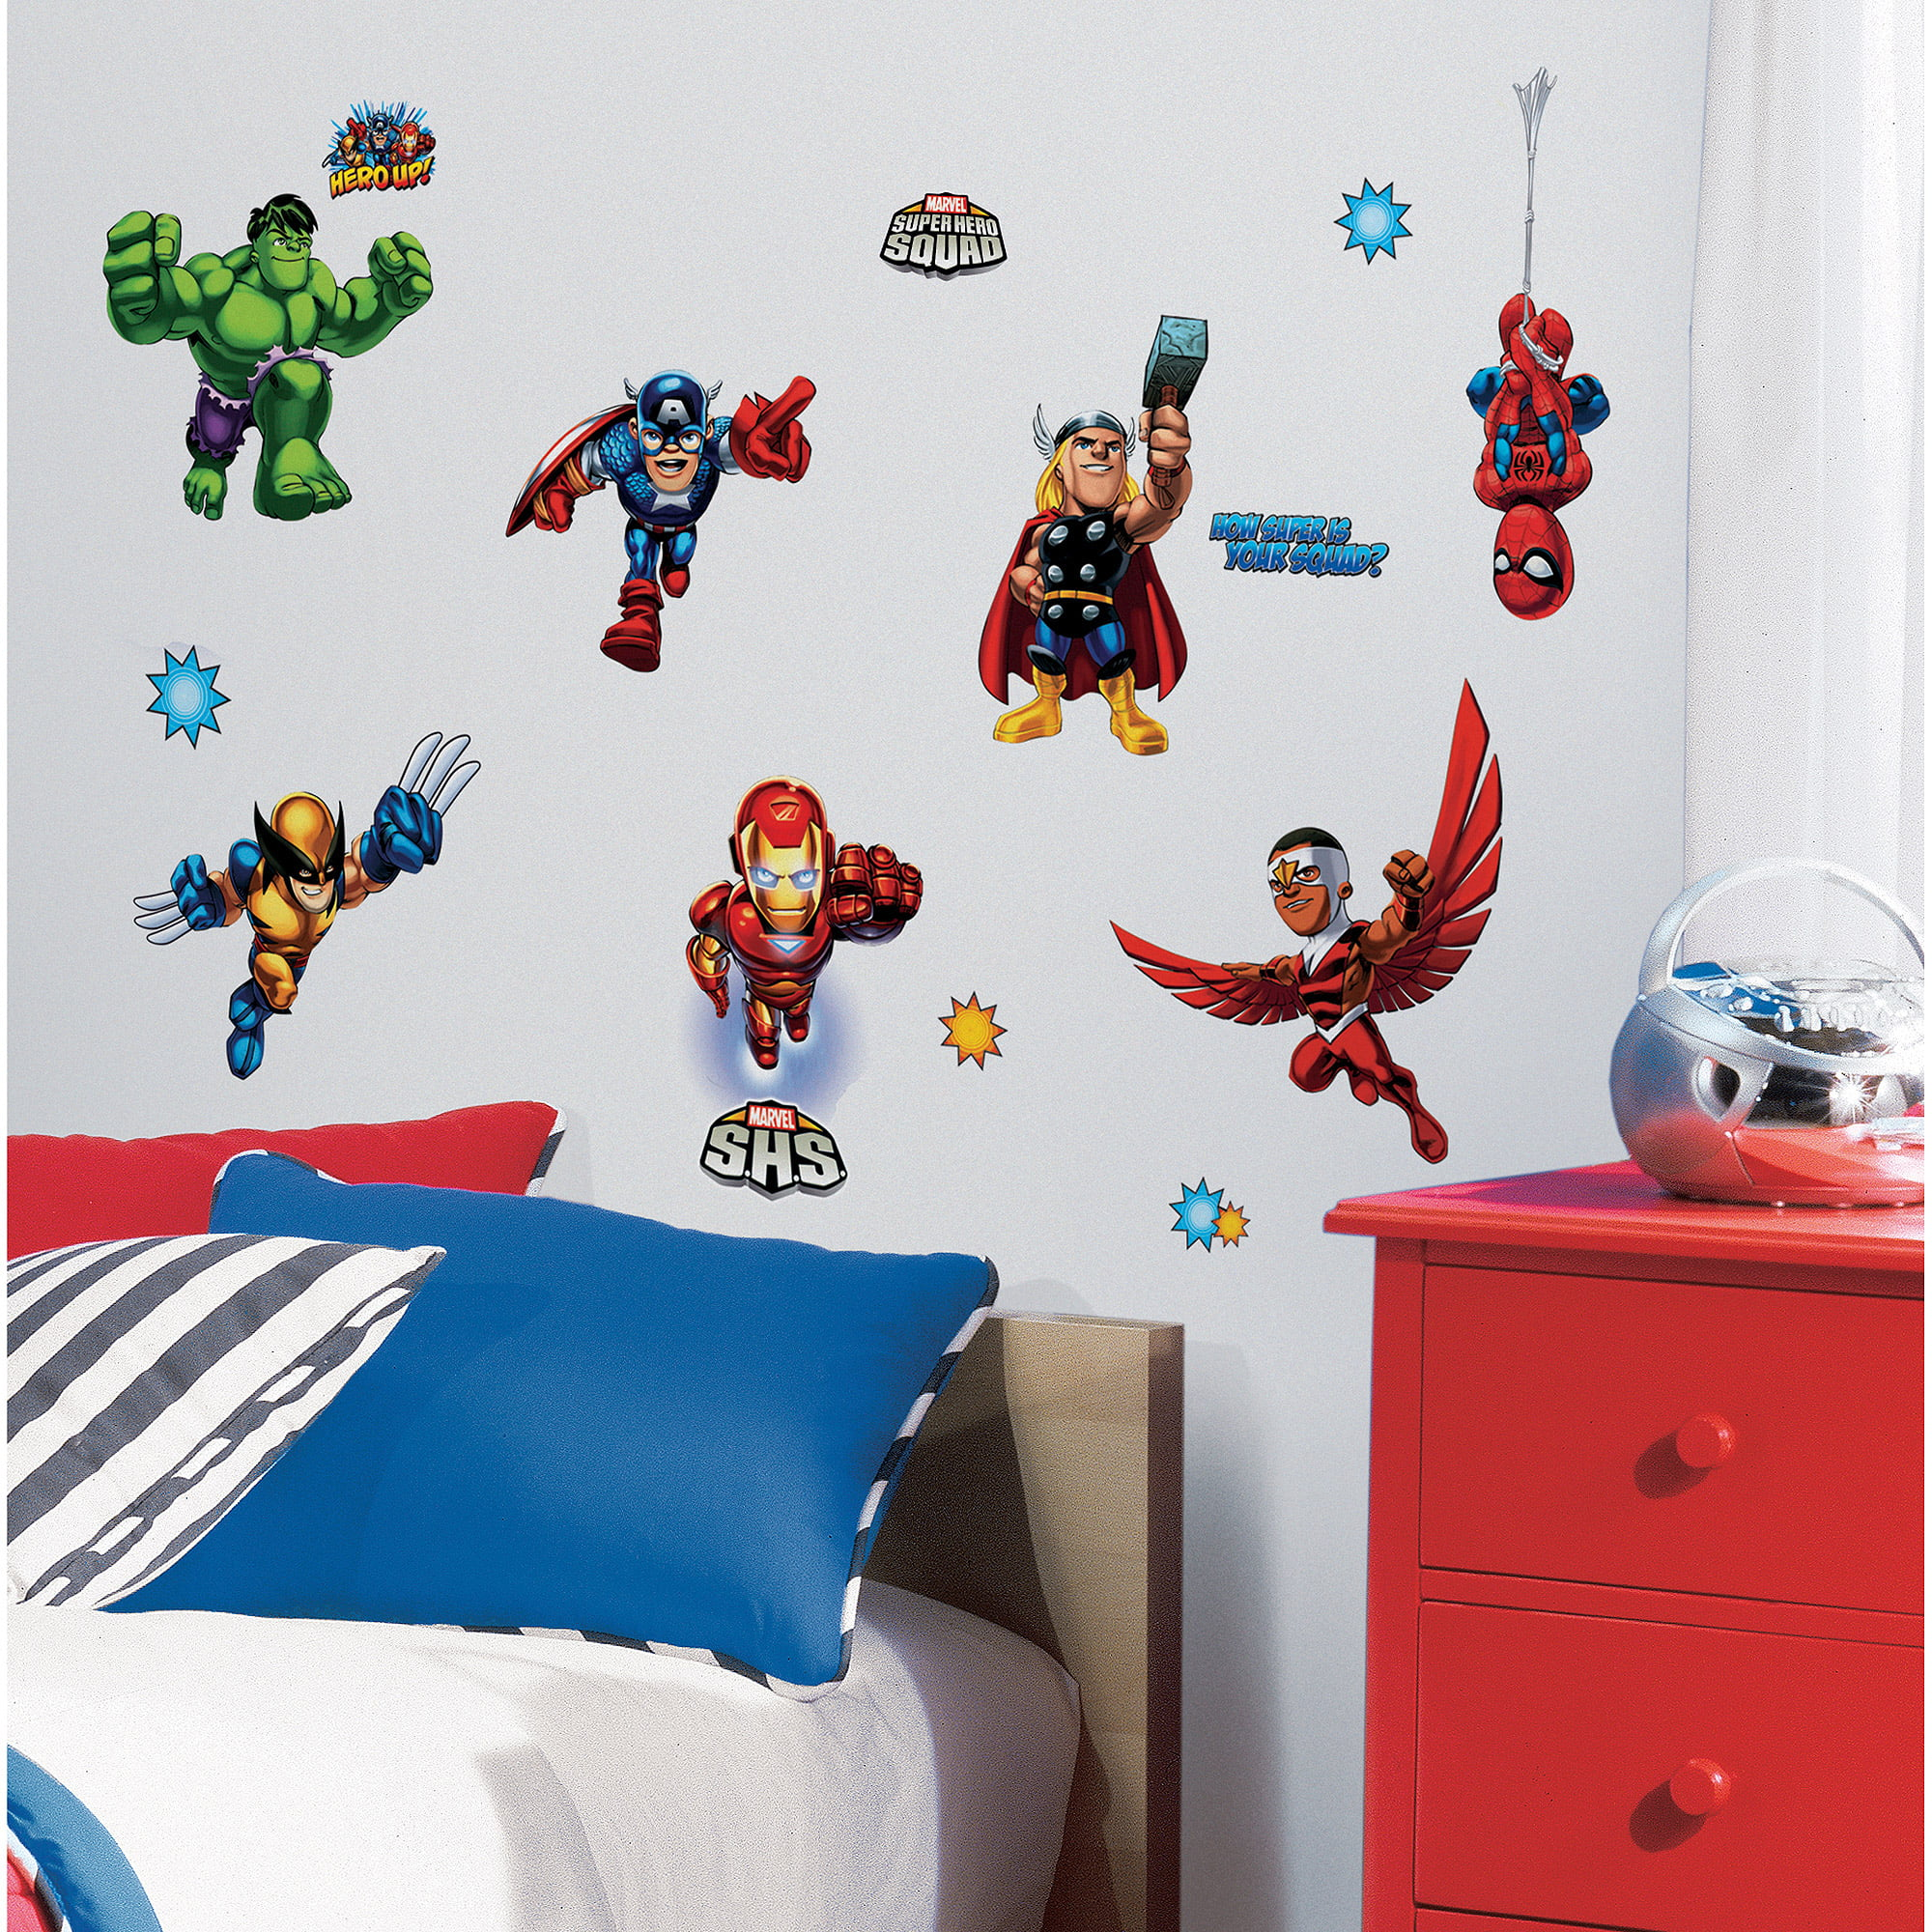 Superhero Wall Decals - Superhero vinyl wall decals